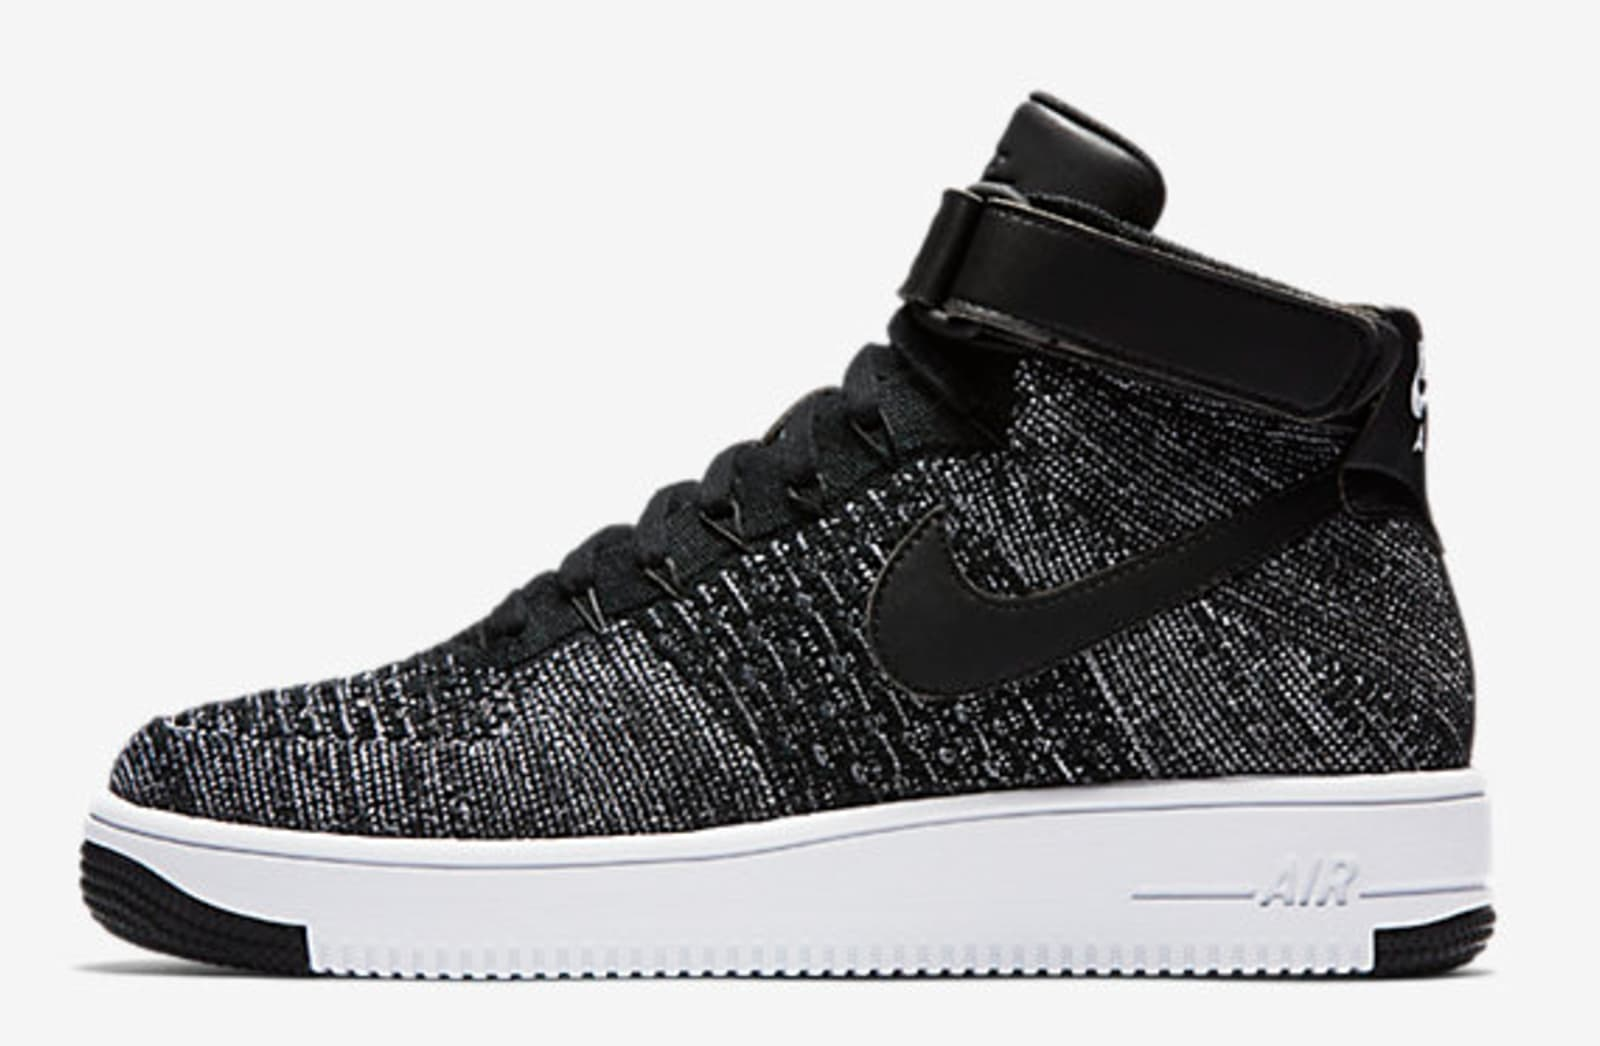 buy popular e285f 0741d Nike Air Force One Ultra Flyknit - Sneaker Sales 4/1/17 ...